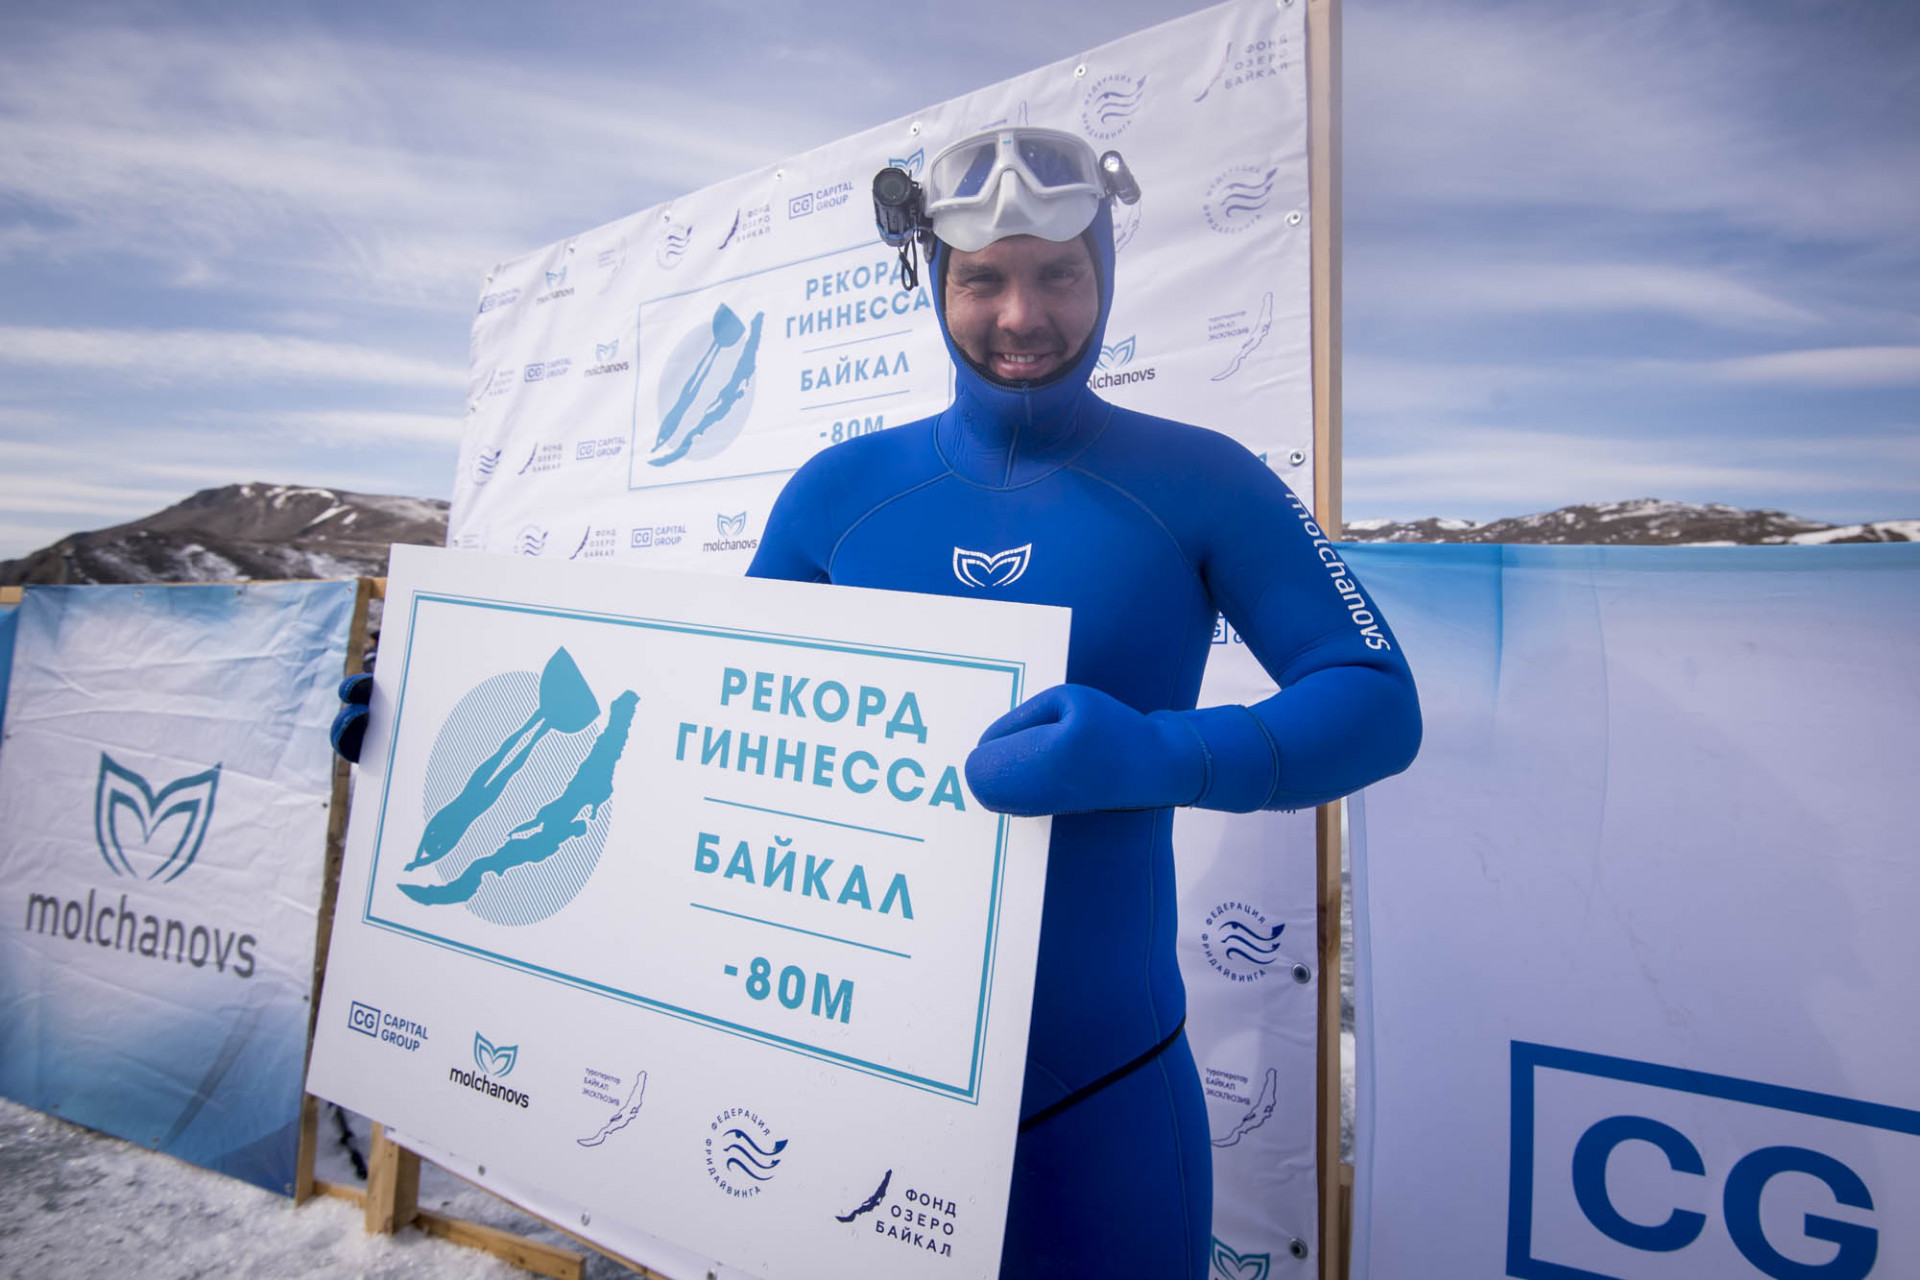 Guinness World Record: Alexey Molchanov, 80 meters under ice - Freediving in United Arab Emirates. Courses, Certificates and Equipment